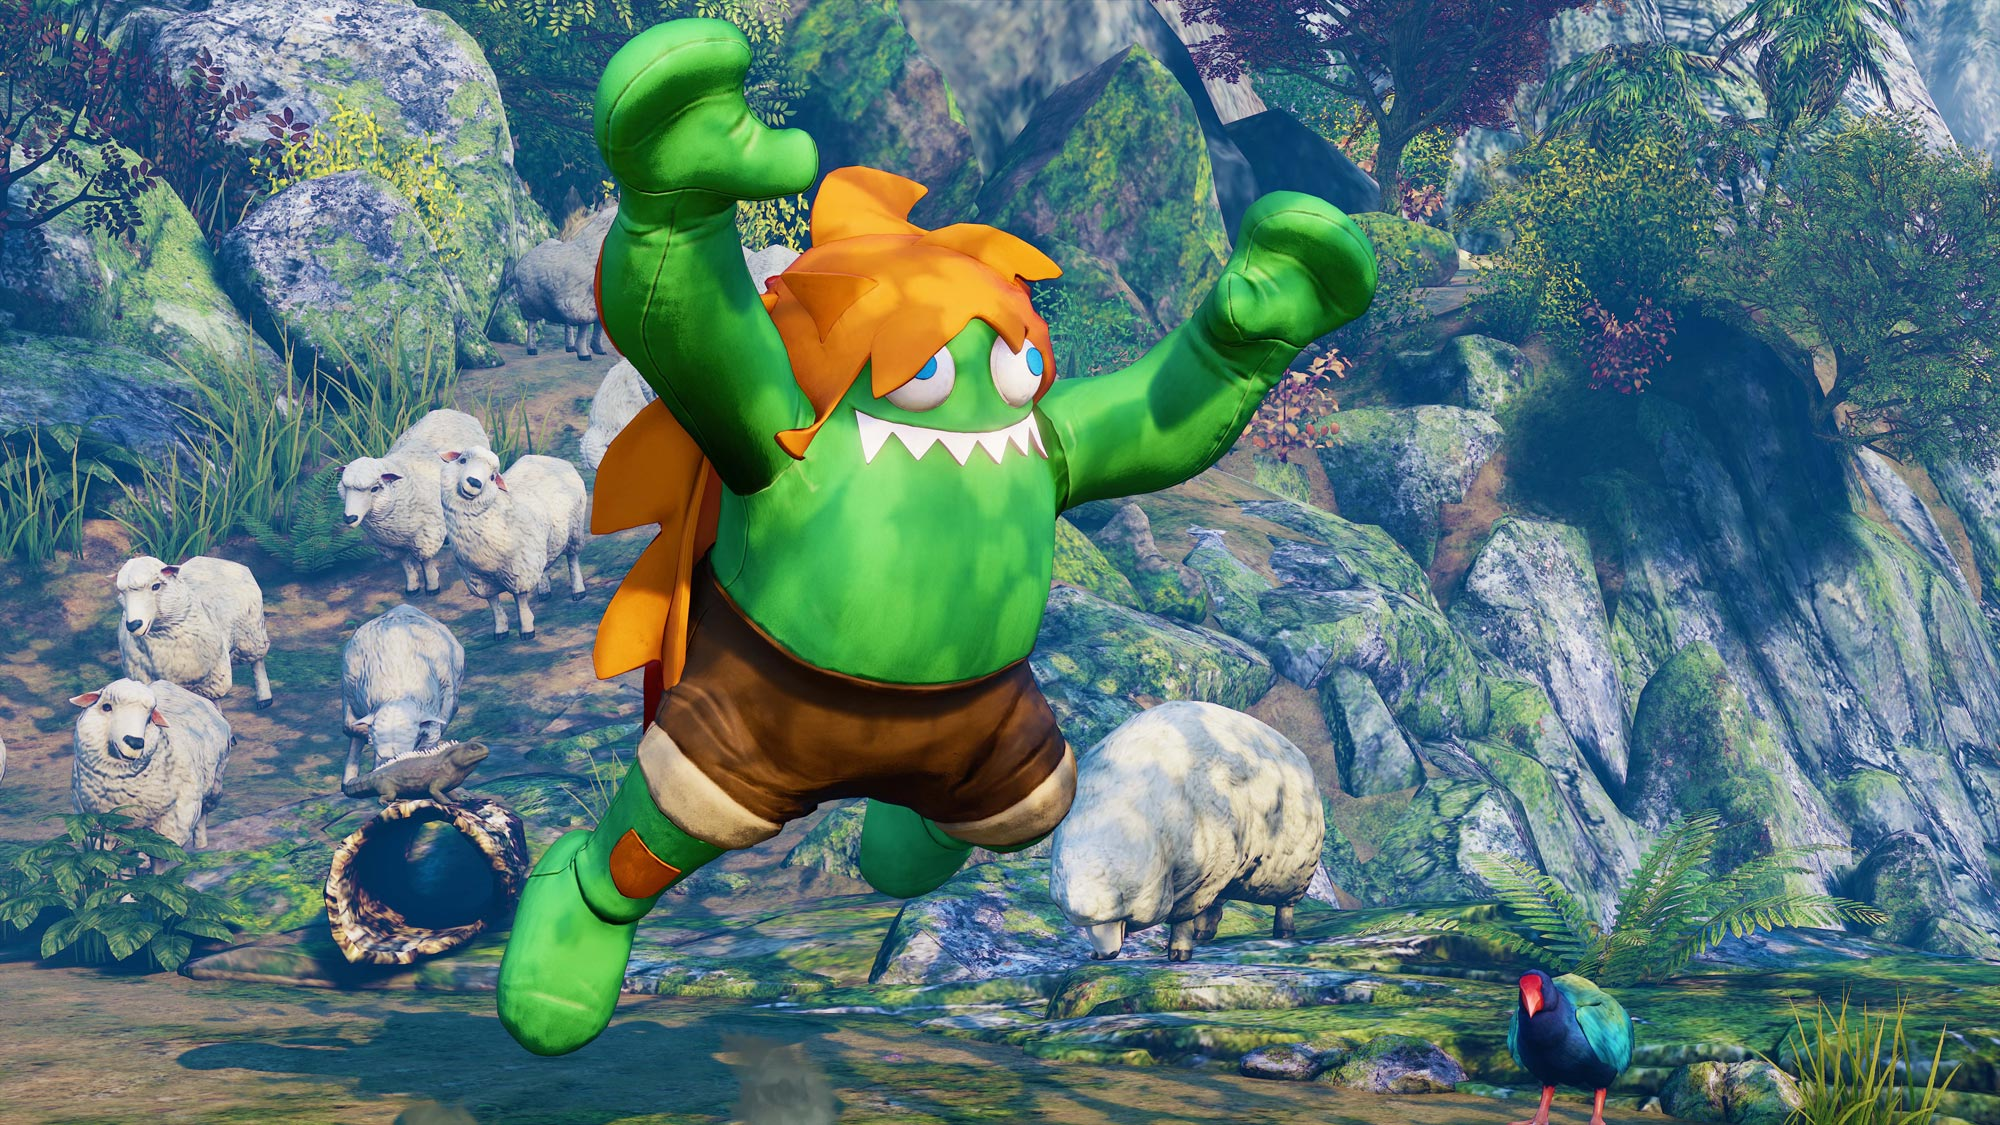 Blanka in Street Fighter 5: Arcade Edition 7 out of 11 image gallery